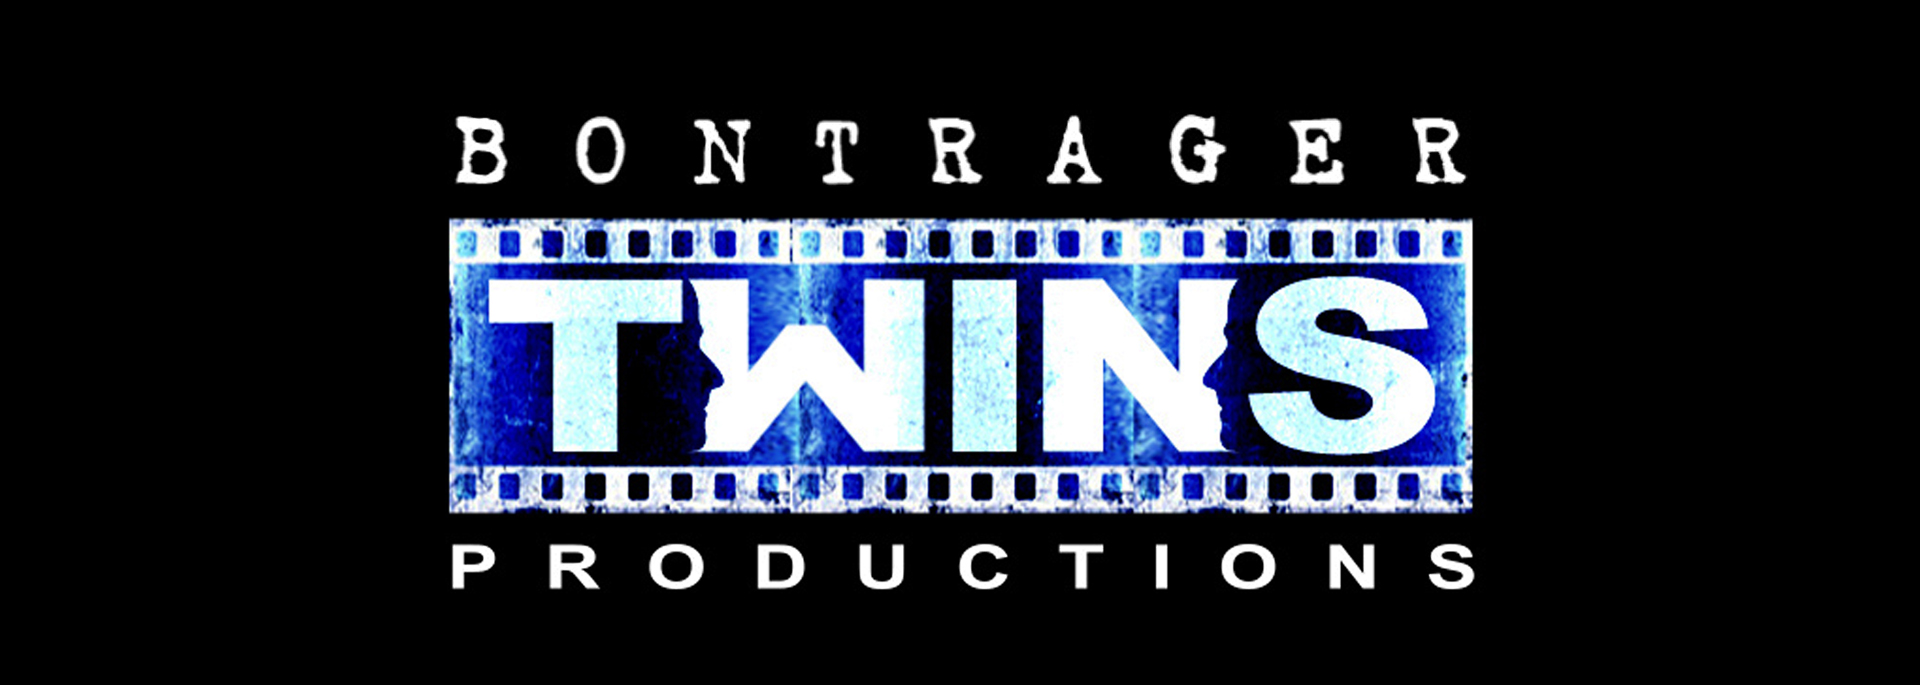 Bontrager Twins Productions channel